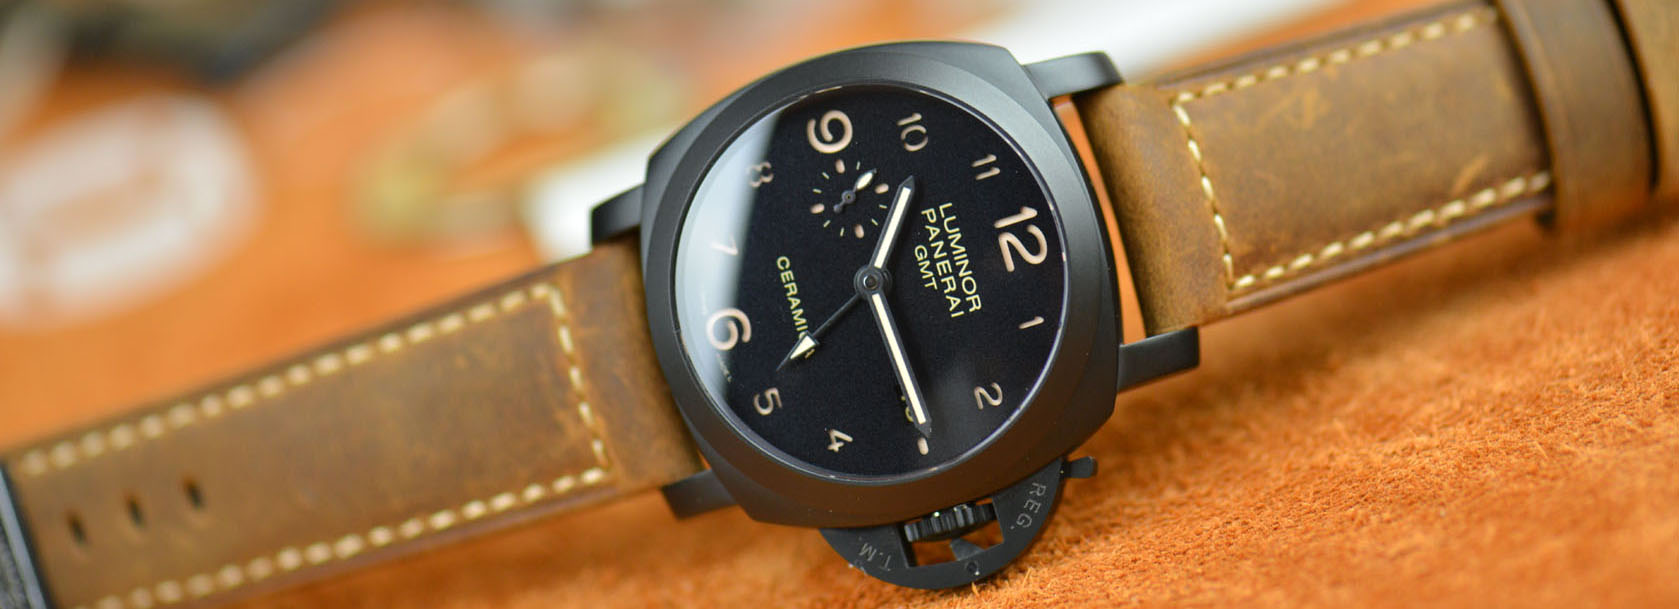 Image result for Panerai replica watches